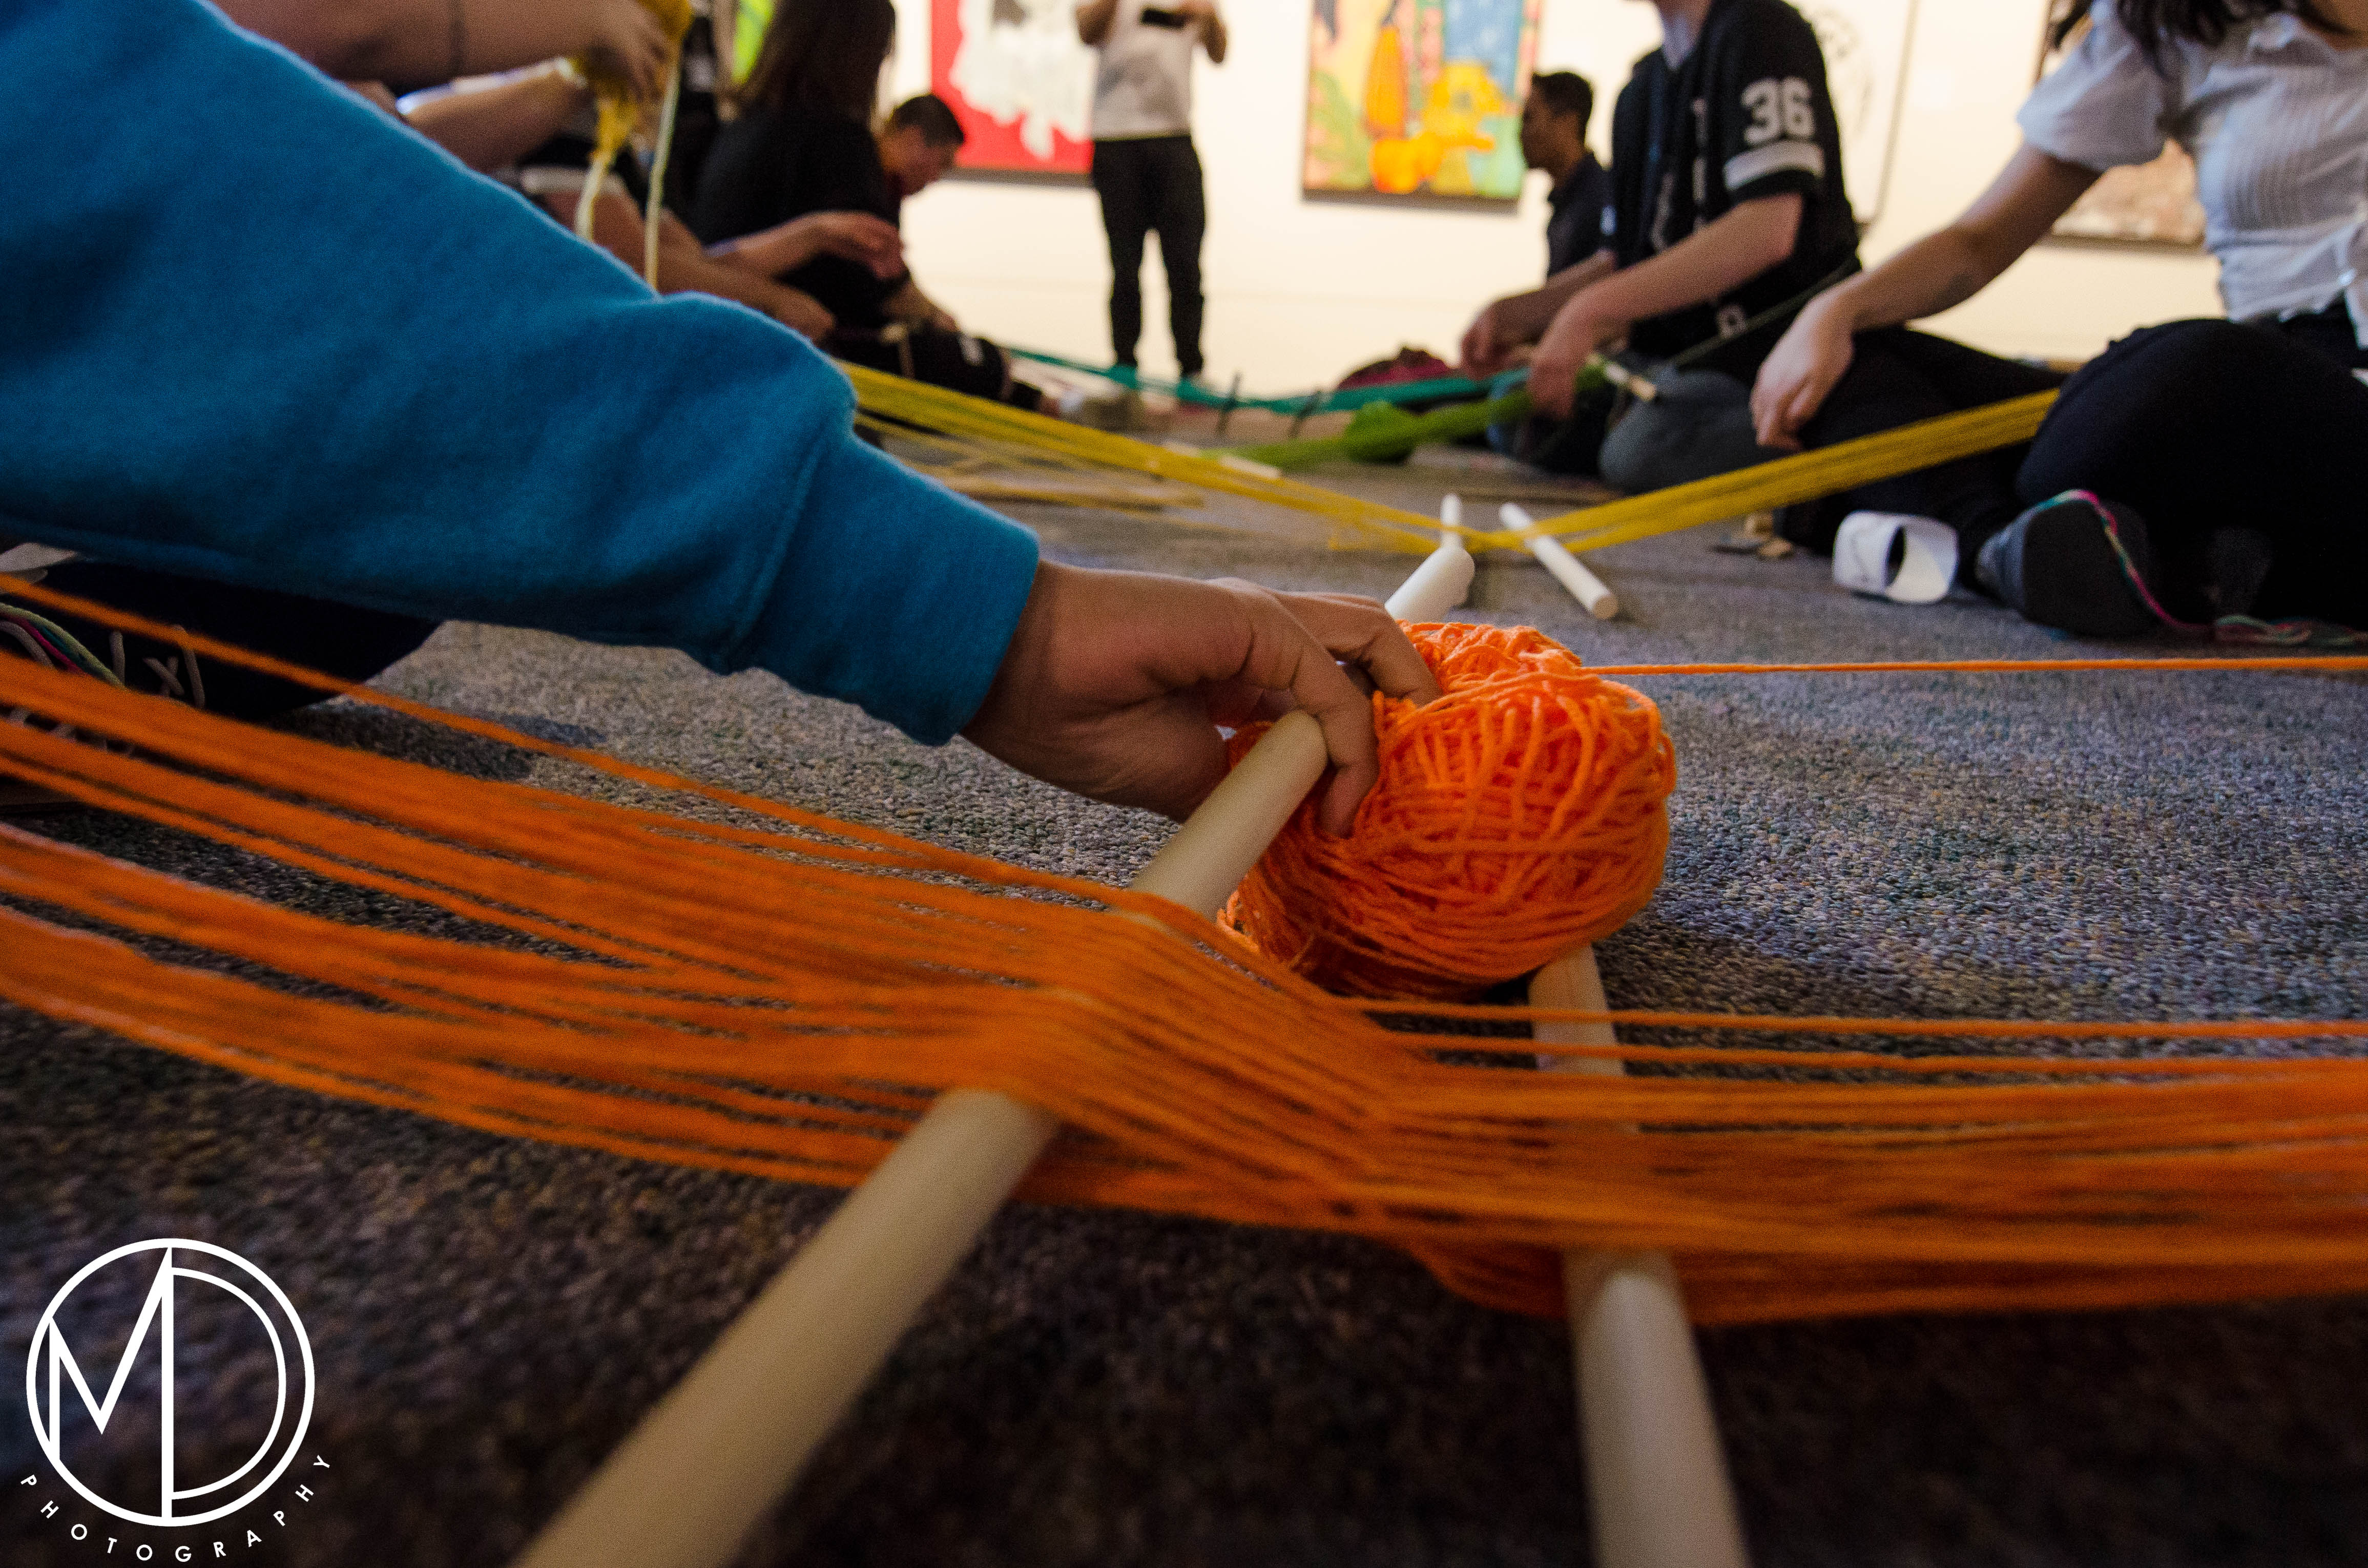 Guests participating in the weaving activity.